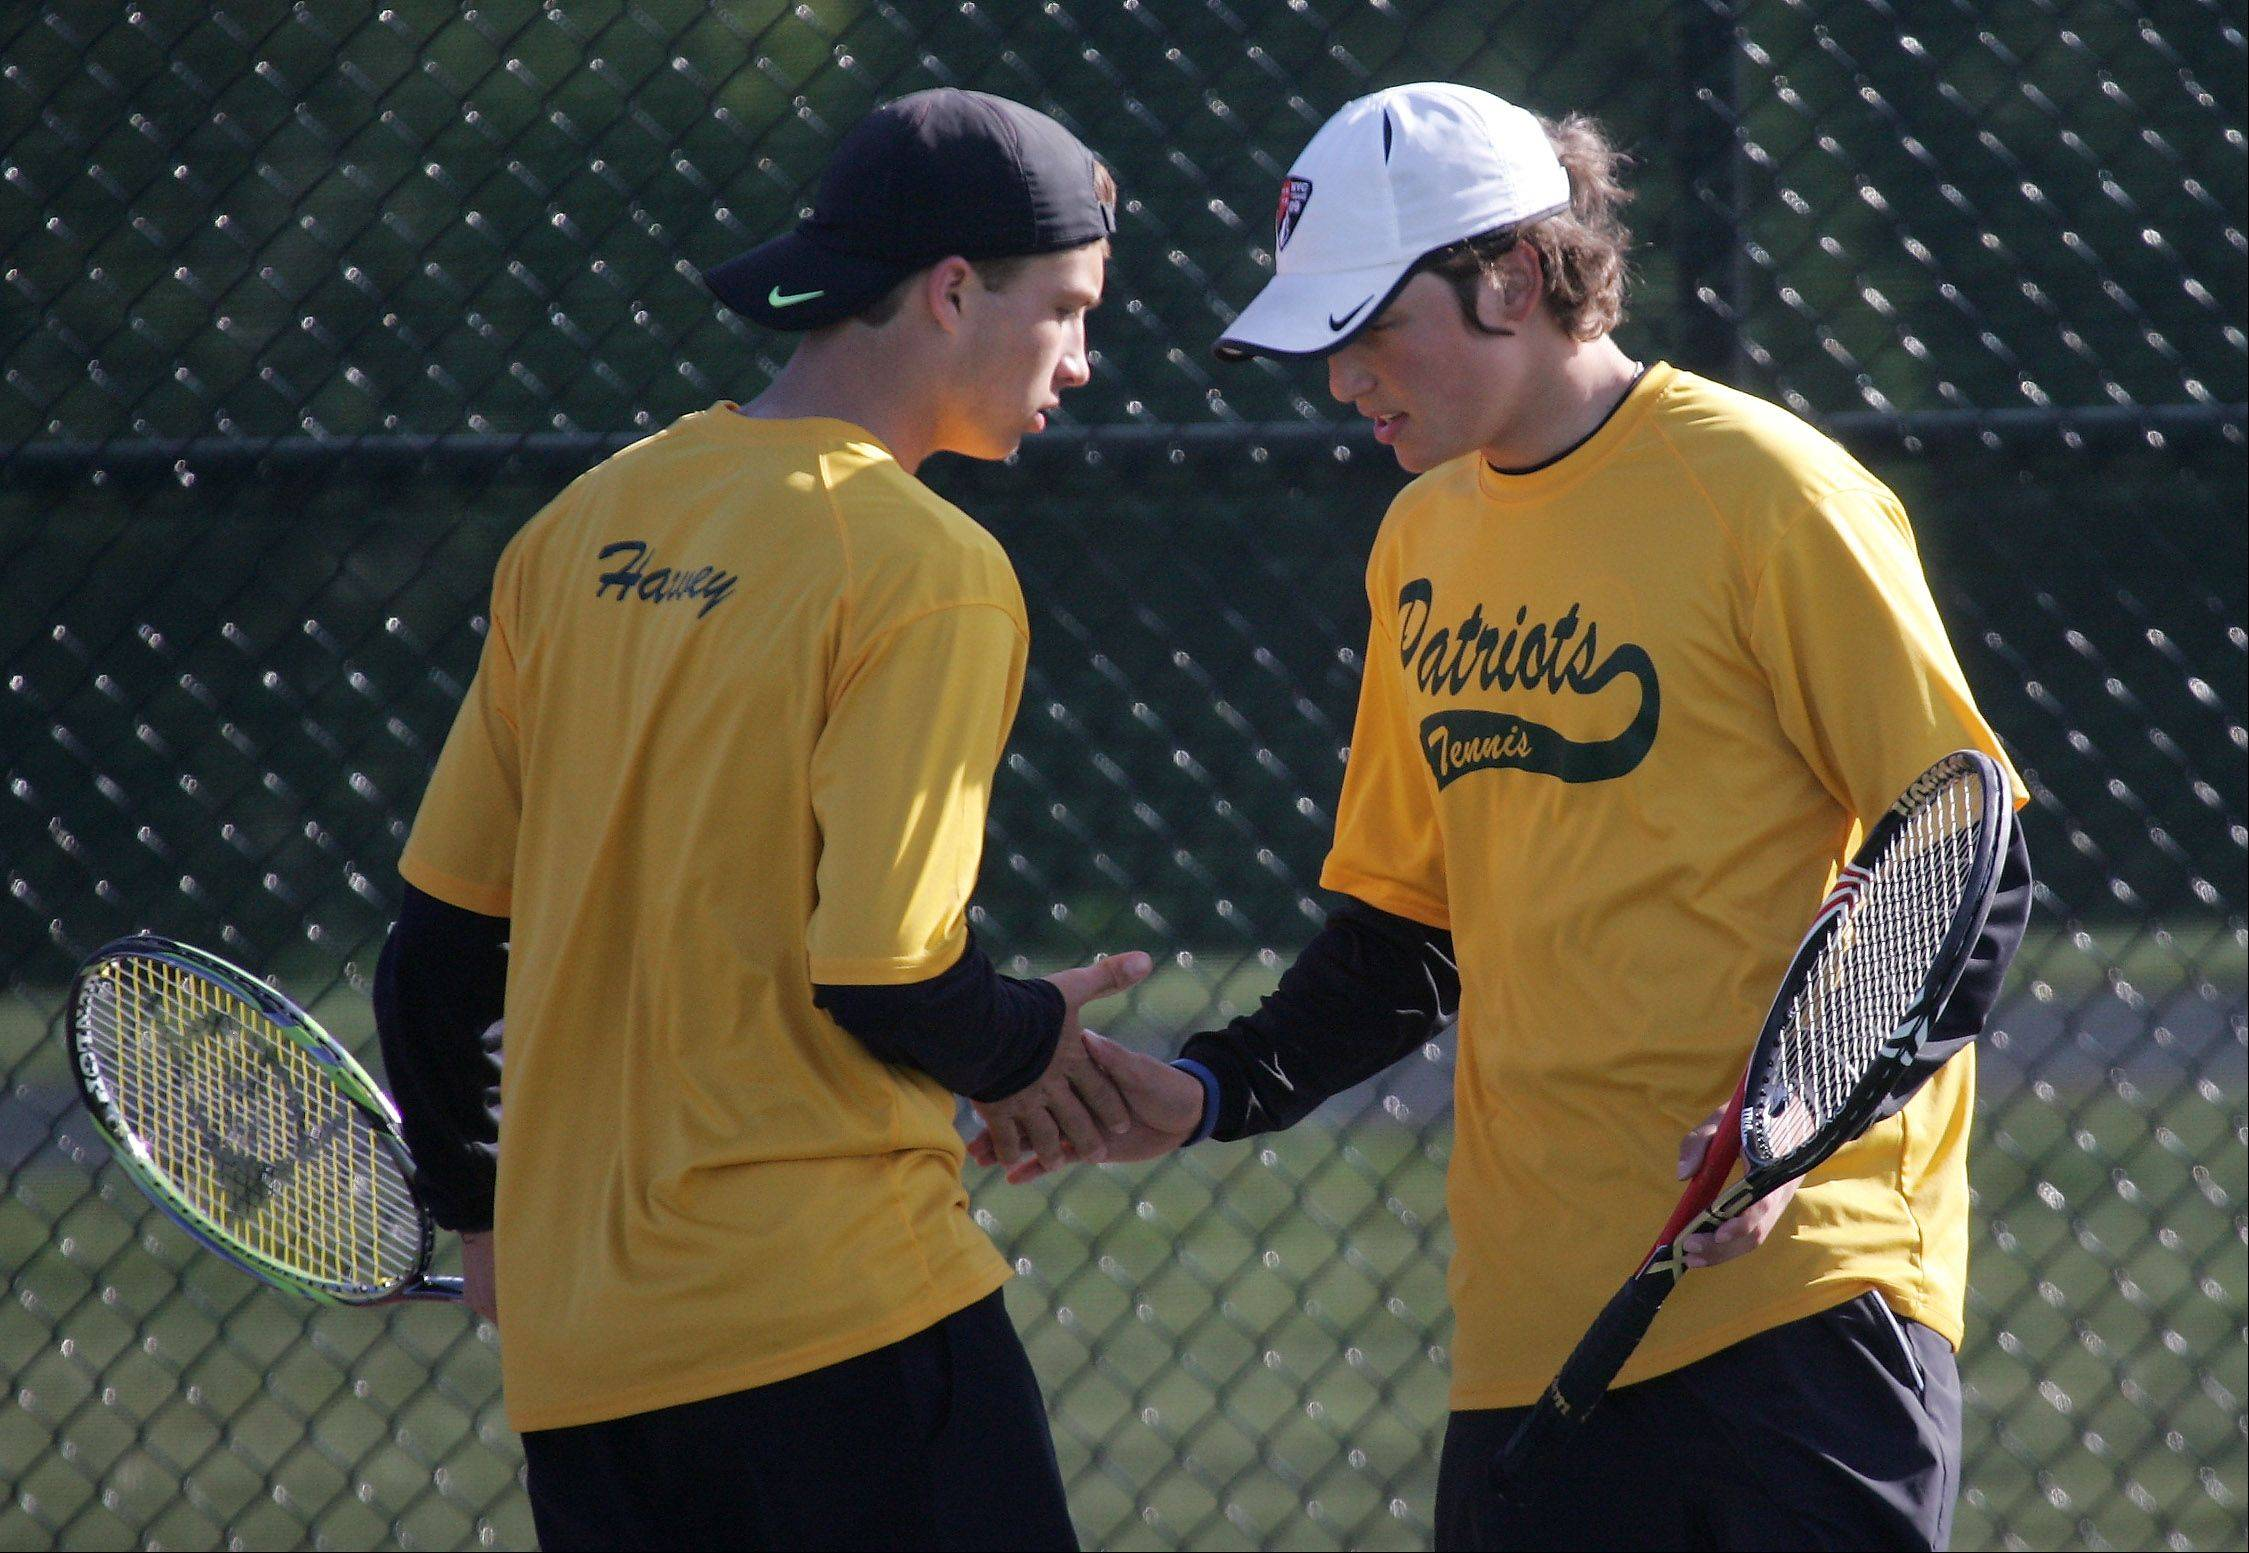 Stevenson's top doubles team -- Colin Harvey, left, and Andrew Komarov -- celebrate after a point Thursday at the Vernon Hills Athletic Complex. The pair faced Lake Forest's team of Camron Bagheri and Connor O'Kelly.